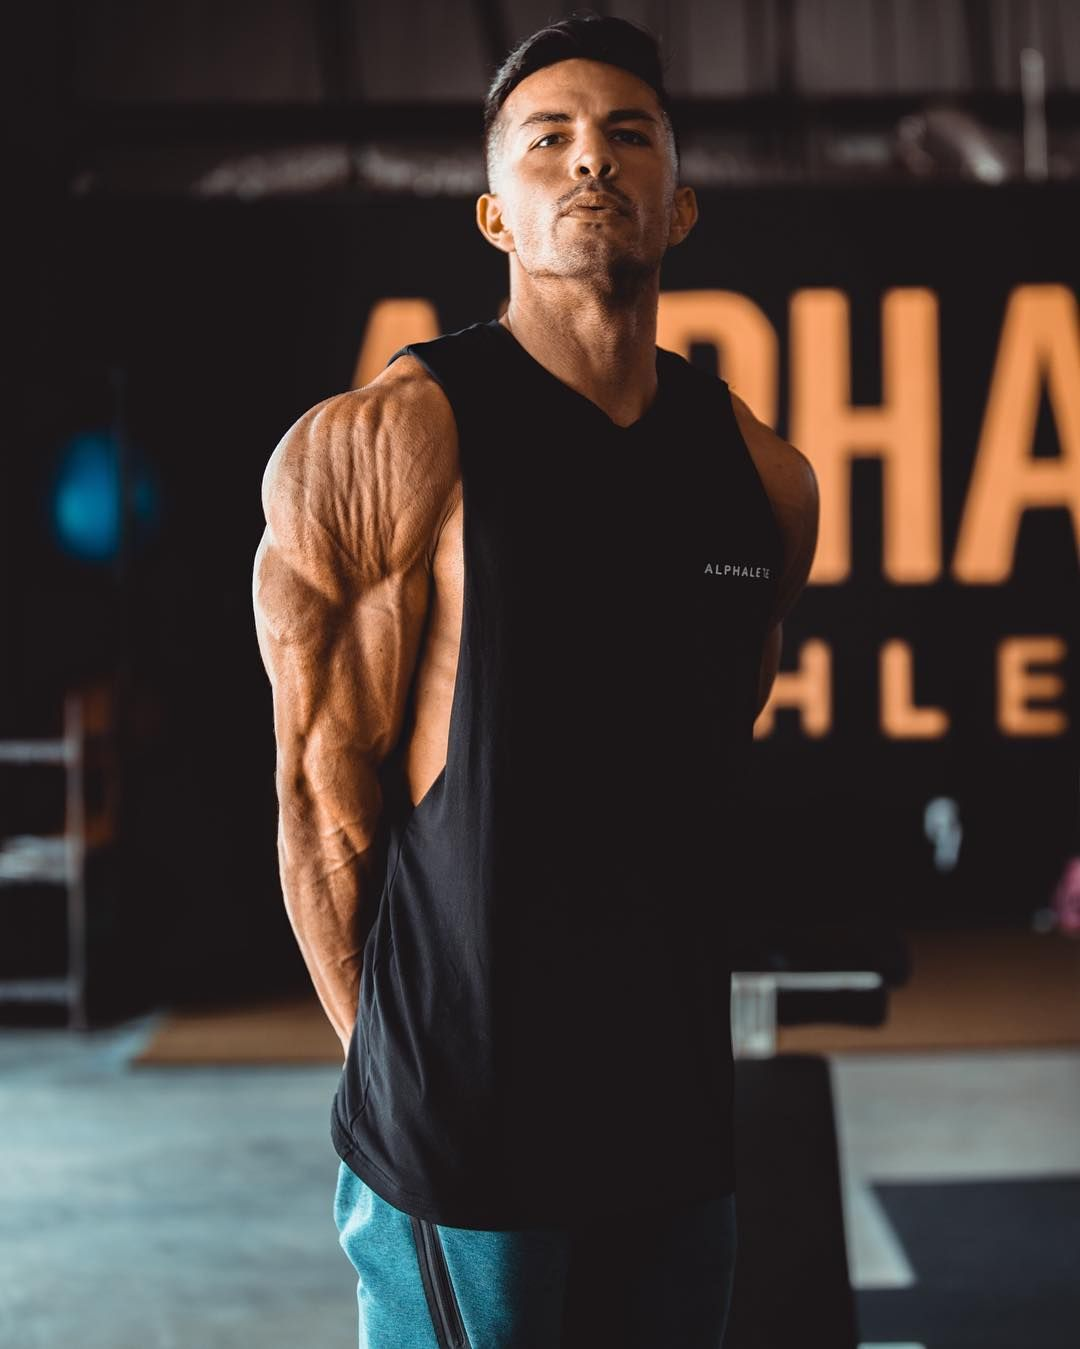 Christian Guzman is The King of Lighting and Filters #bodybuilding #fitness #gym #  sc 1 st  Pinterest & Christian Guzman is The King of Lighting and Filters #bodybuilding ... azcodes.com